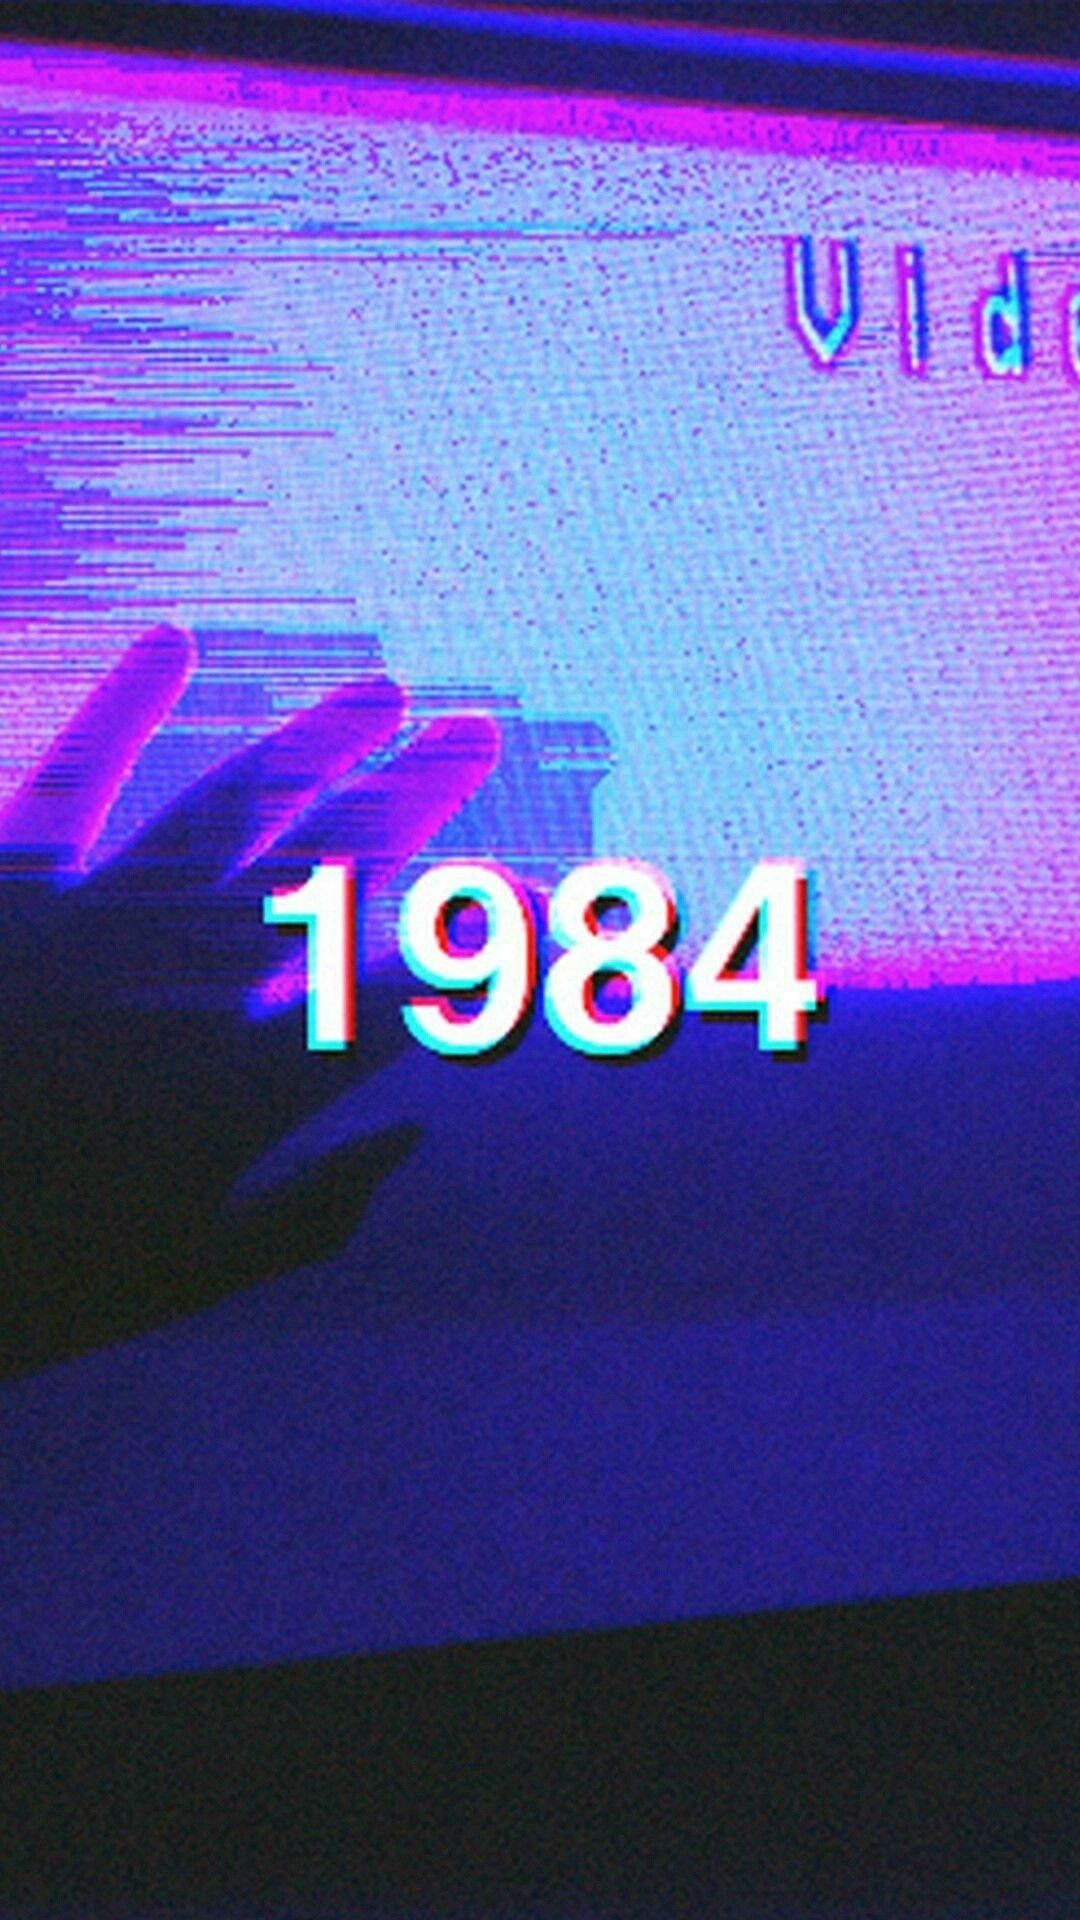 80s Aesthetic Wallpaper 107 images in Collection Page 2 1080x1920